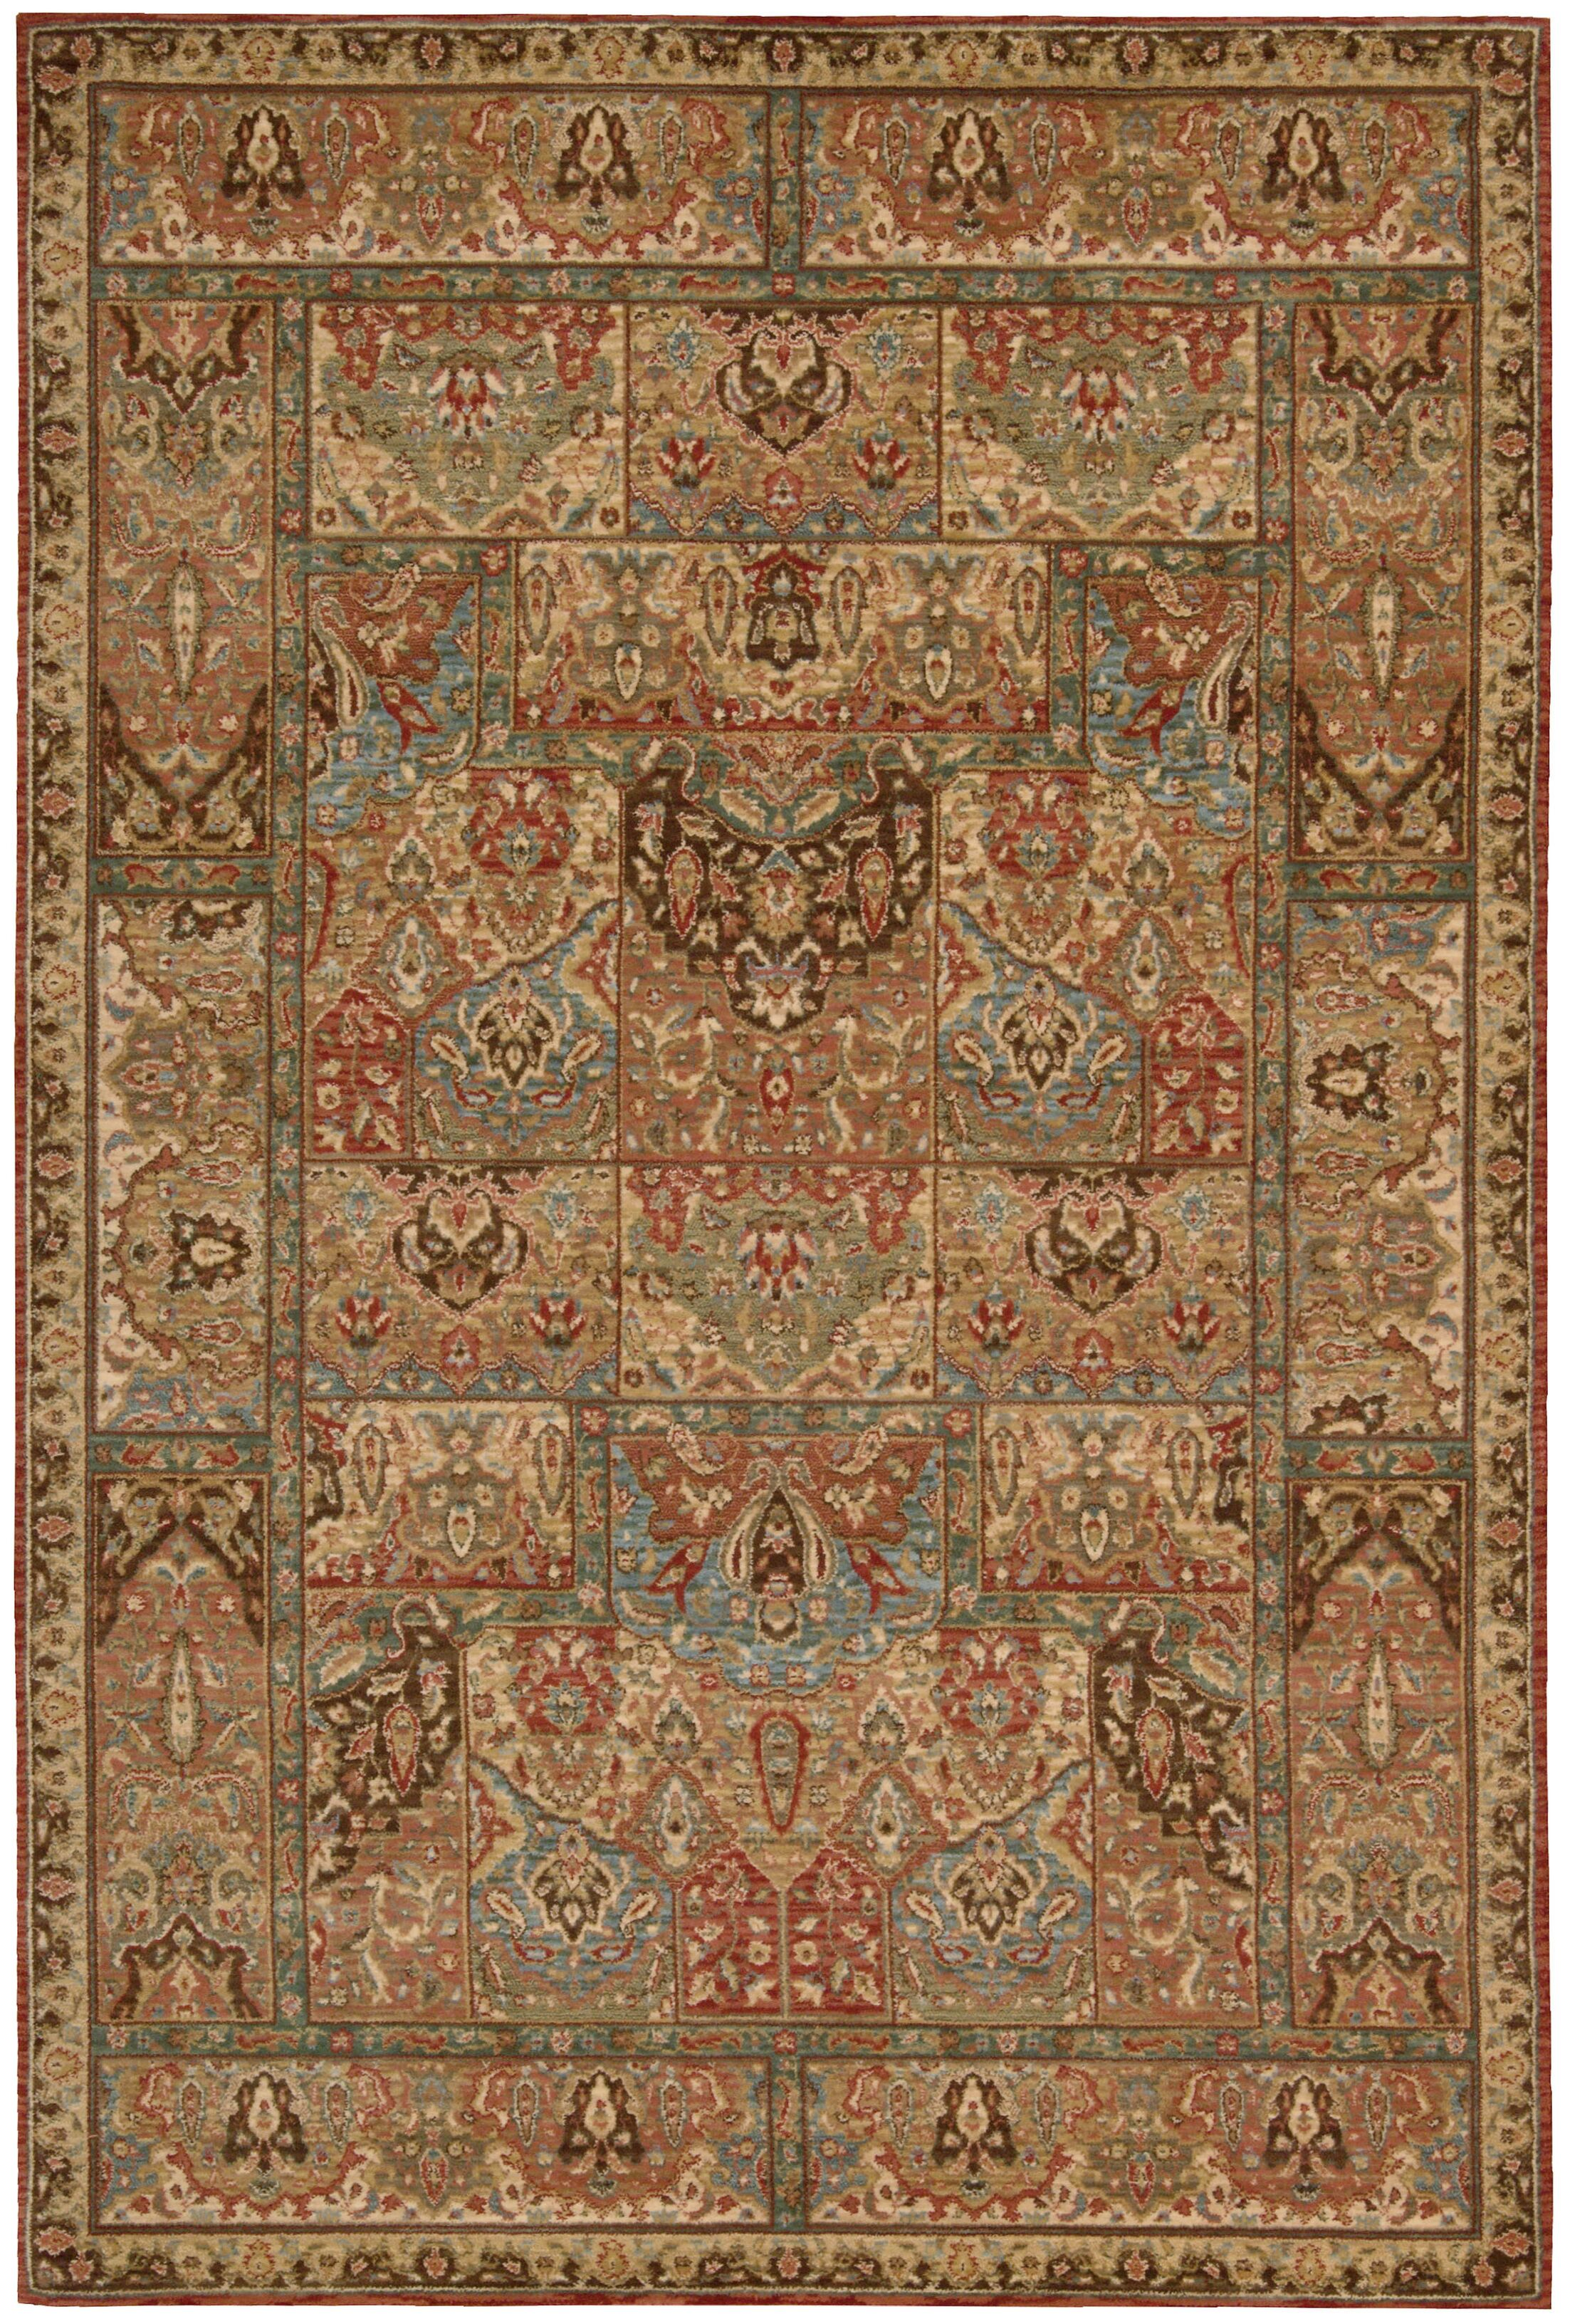 Crownover Wool Brown Area Rug Rug Size: Rectangle 2'6